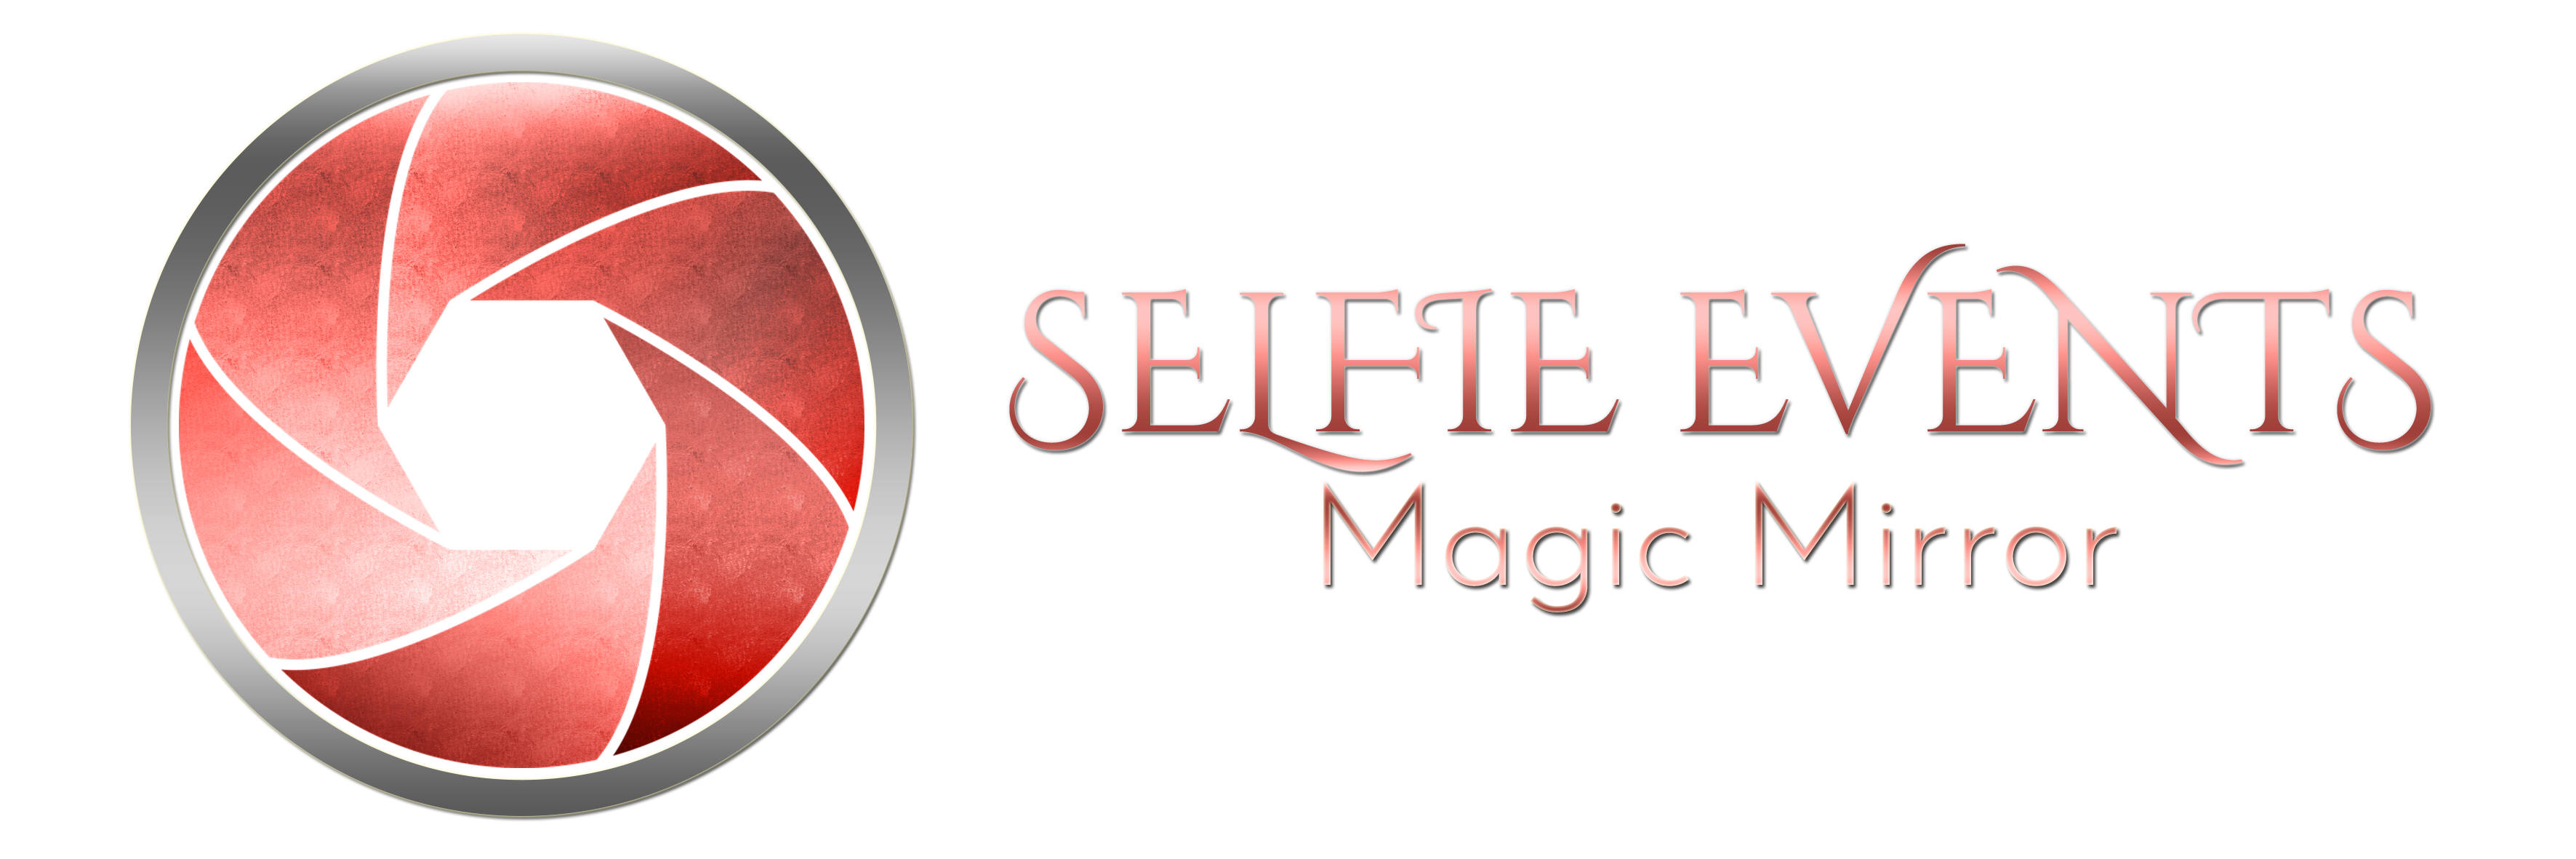 Selfie Events Noleggio Photobooth e Magic Mirror a Roma e Provincia – Ideale per Matrimoni, Compleanni, Cerimonie ed Eventi Speciali